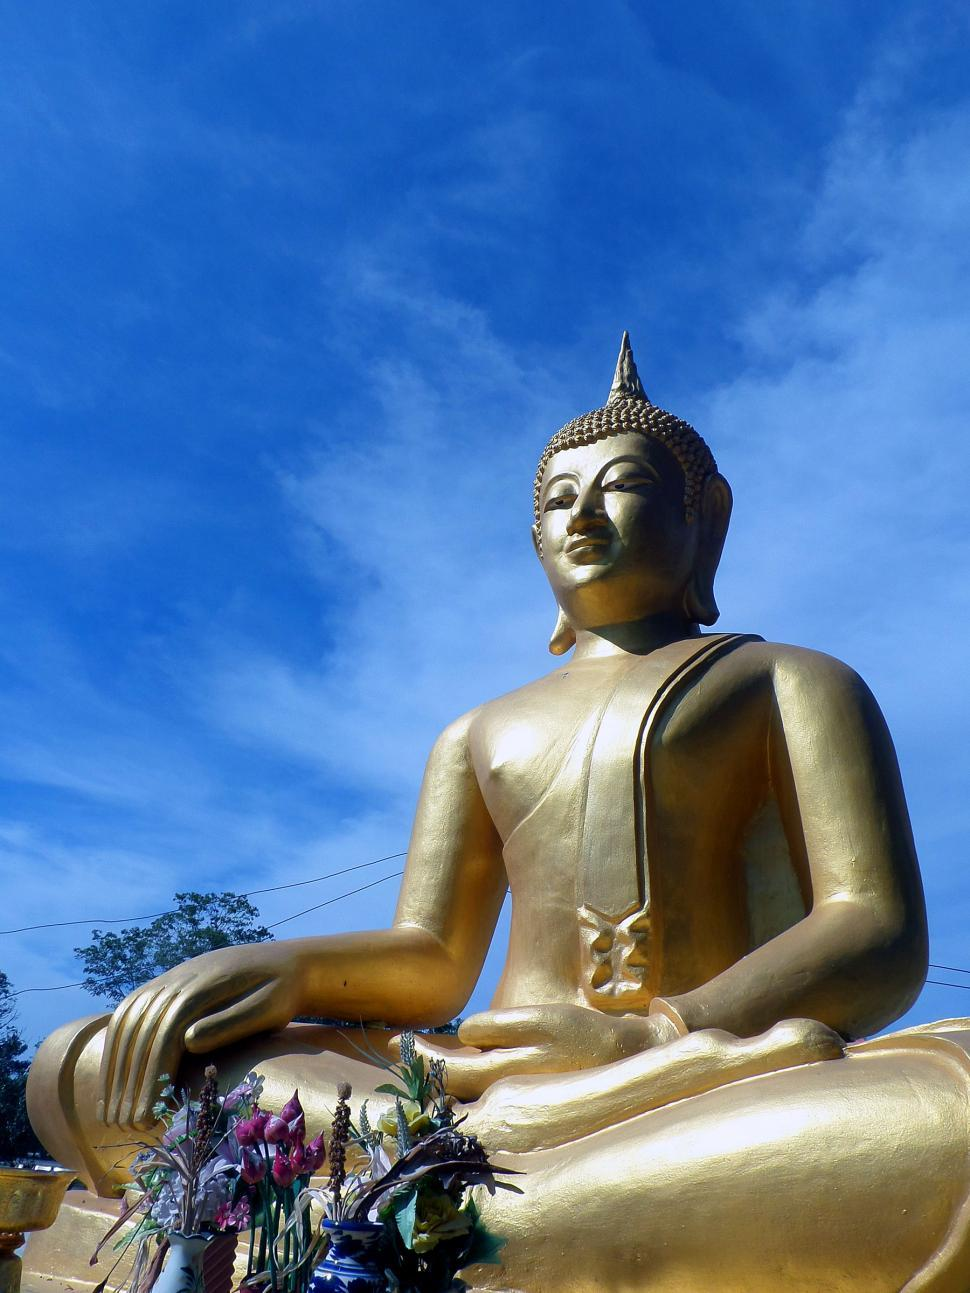 Download Free Stock Photo of Buddha